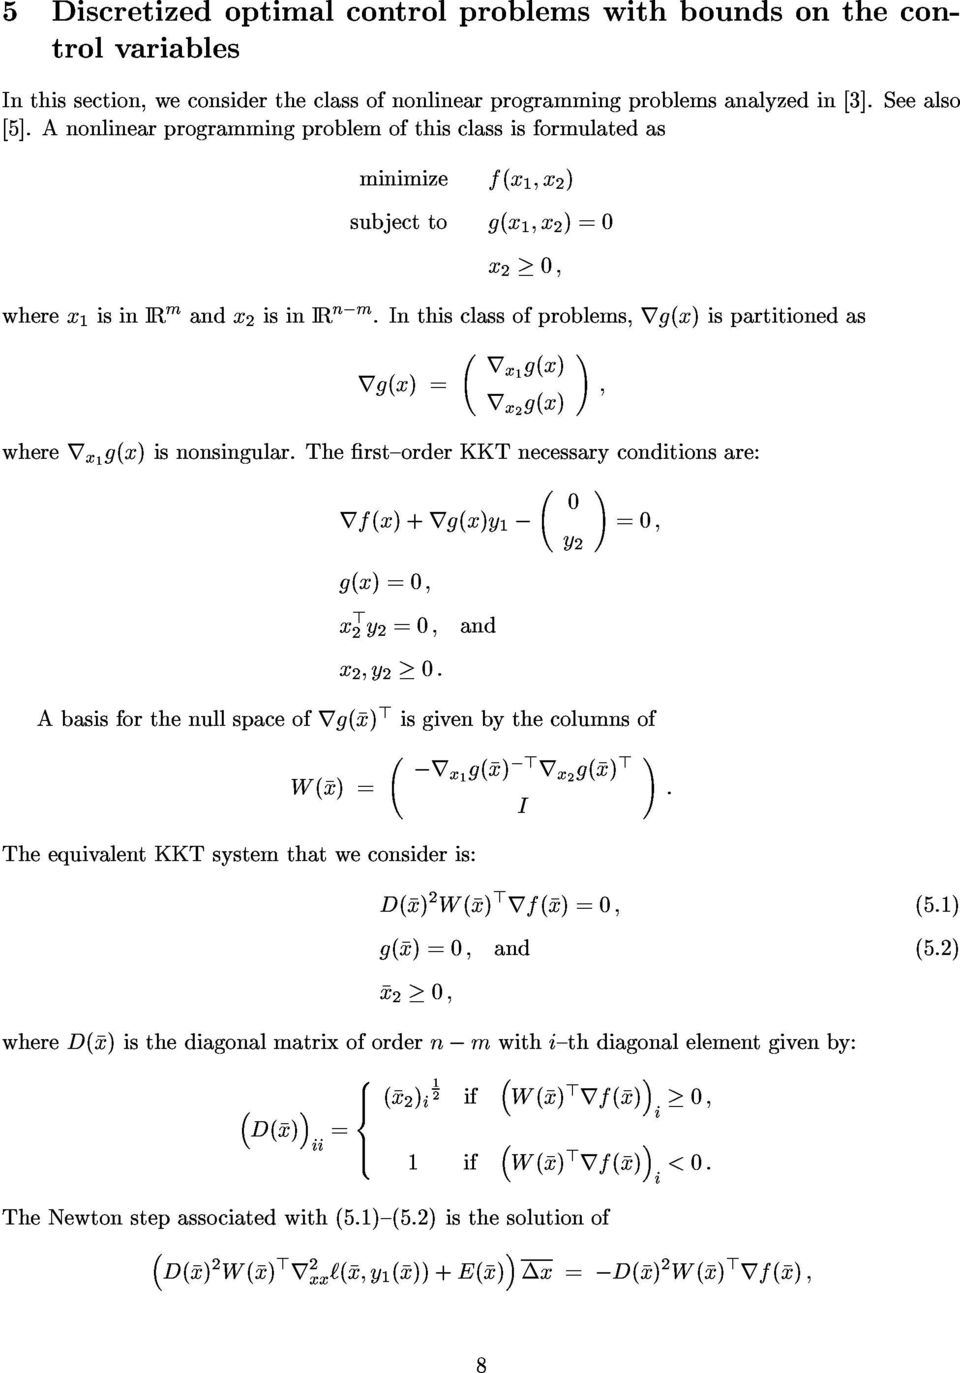 The rst{orer KKT necessary conitions are rf(x) + ry? = y 2 = x > 2 y 2 = x 2 y 2 A basis for the null space of r > is given by the columns of W (x) = The equivalent KKT system that we consier is?r x?